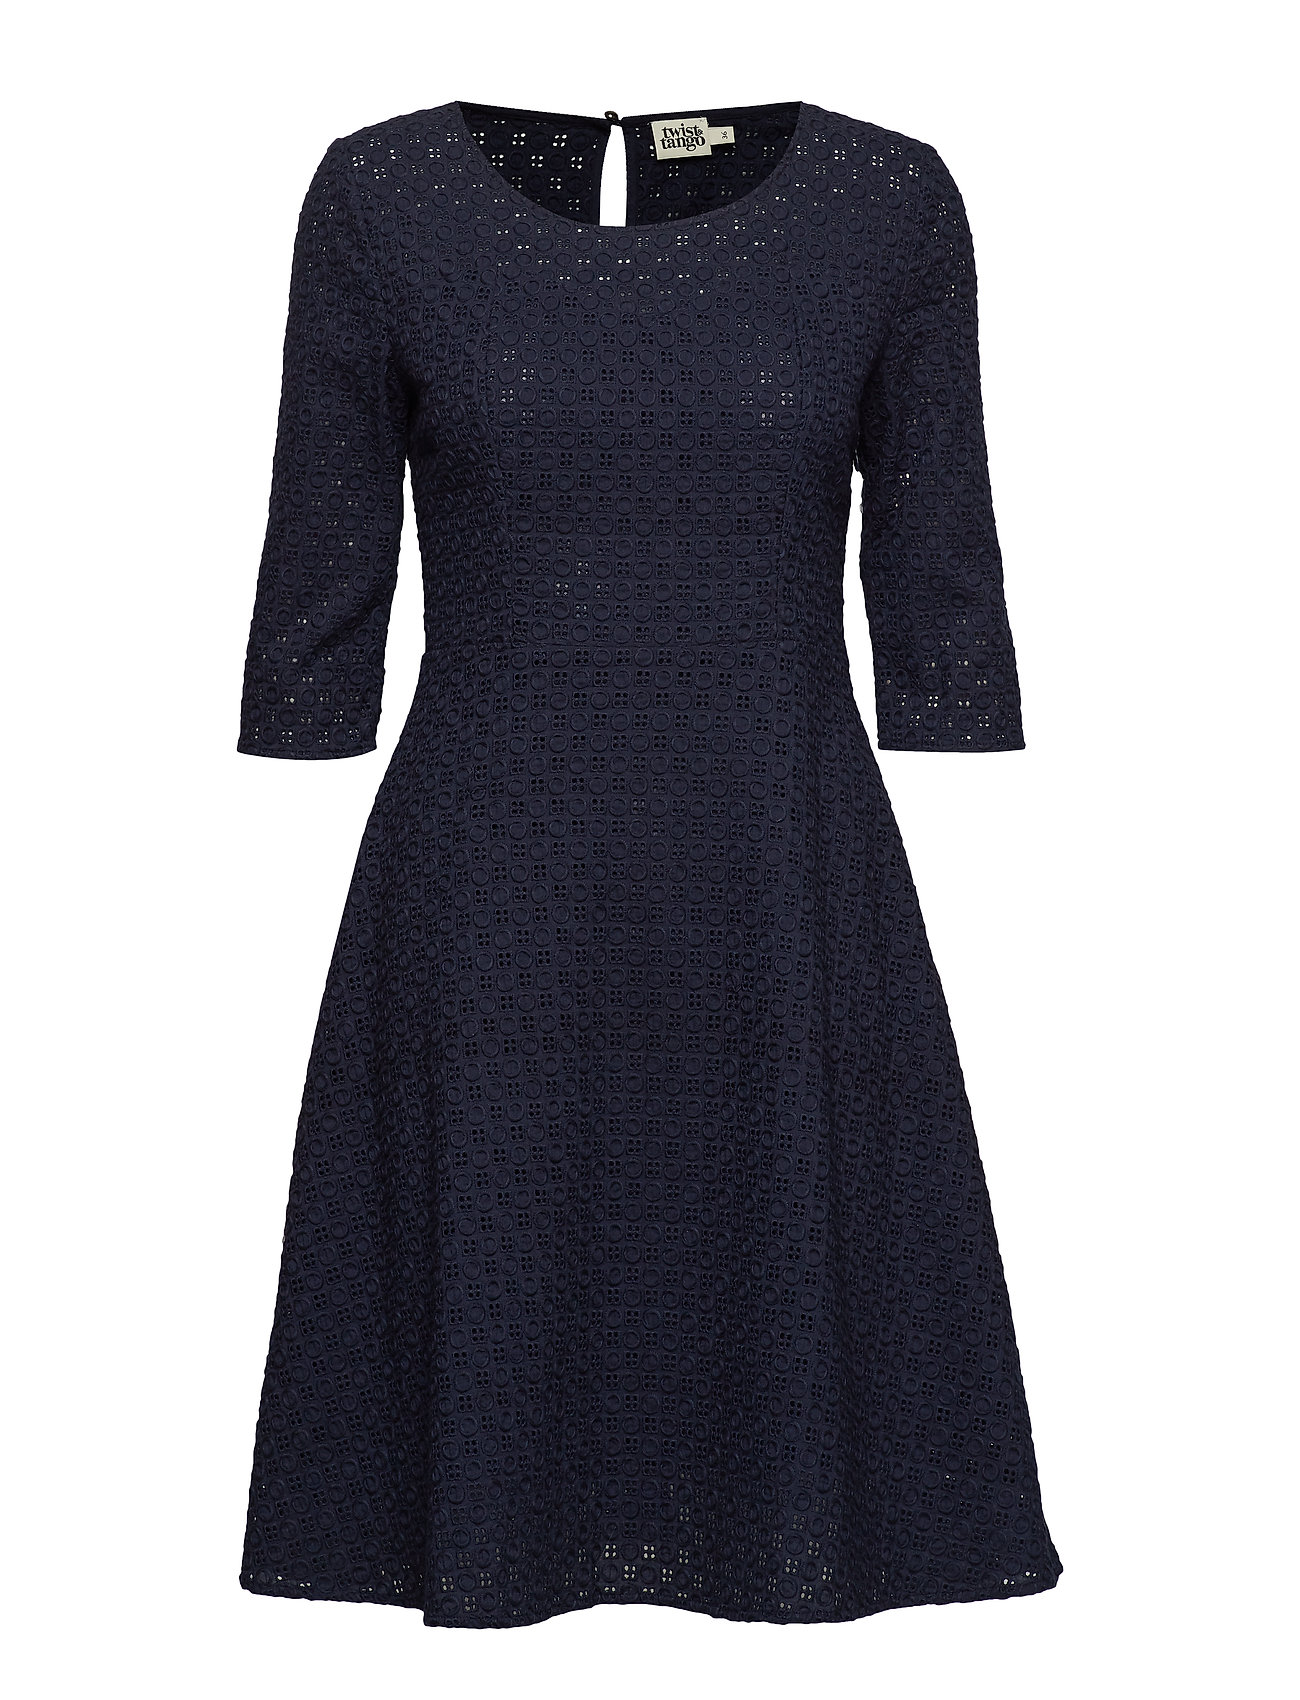 Twist & Tango Ariadne Dress Blackish Blue - BLACKISH BLUE